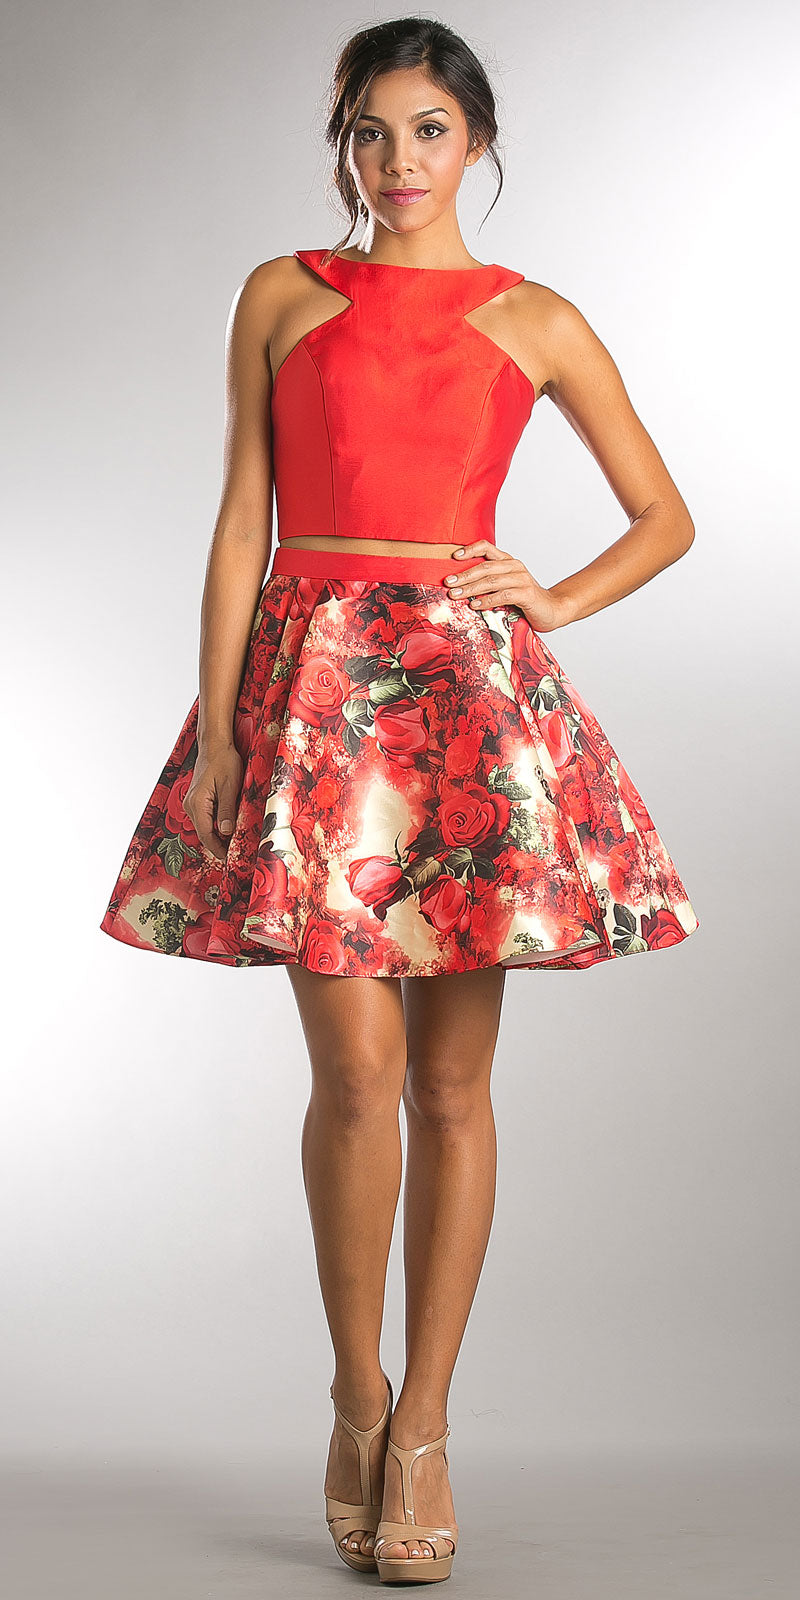 Image of Solid Crop Top Short Floral Print Skirt Homecoming Dress in Red